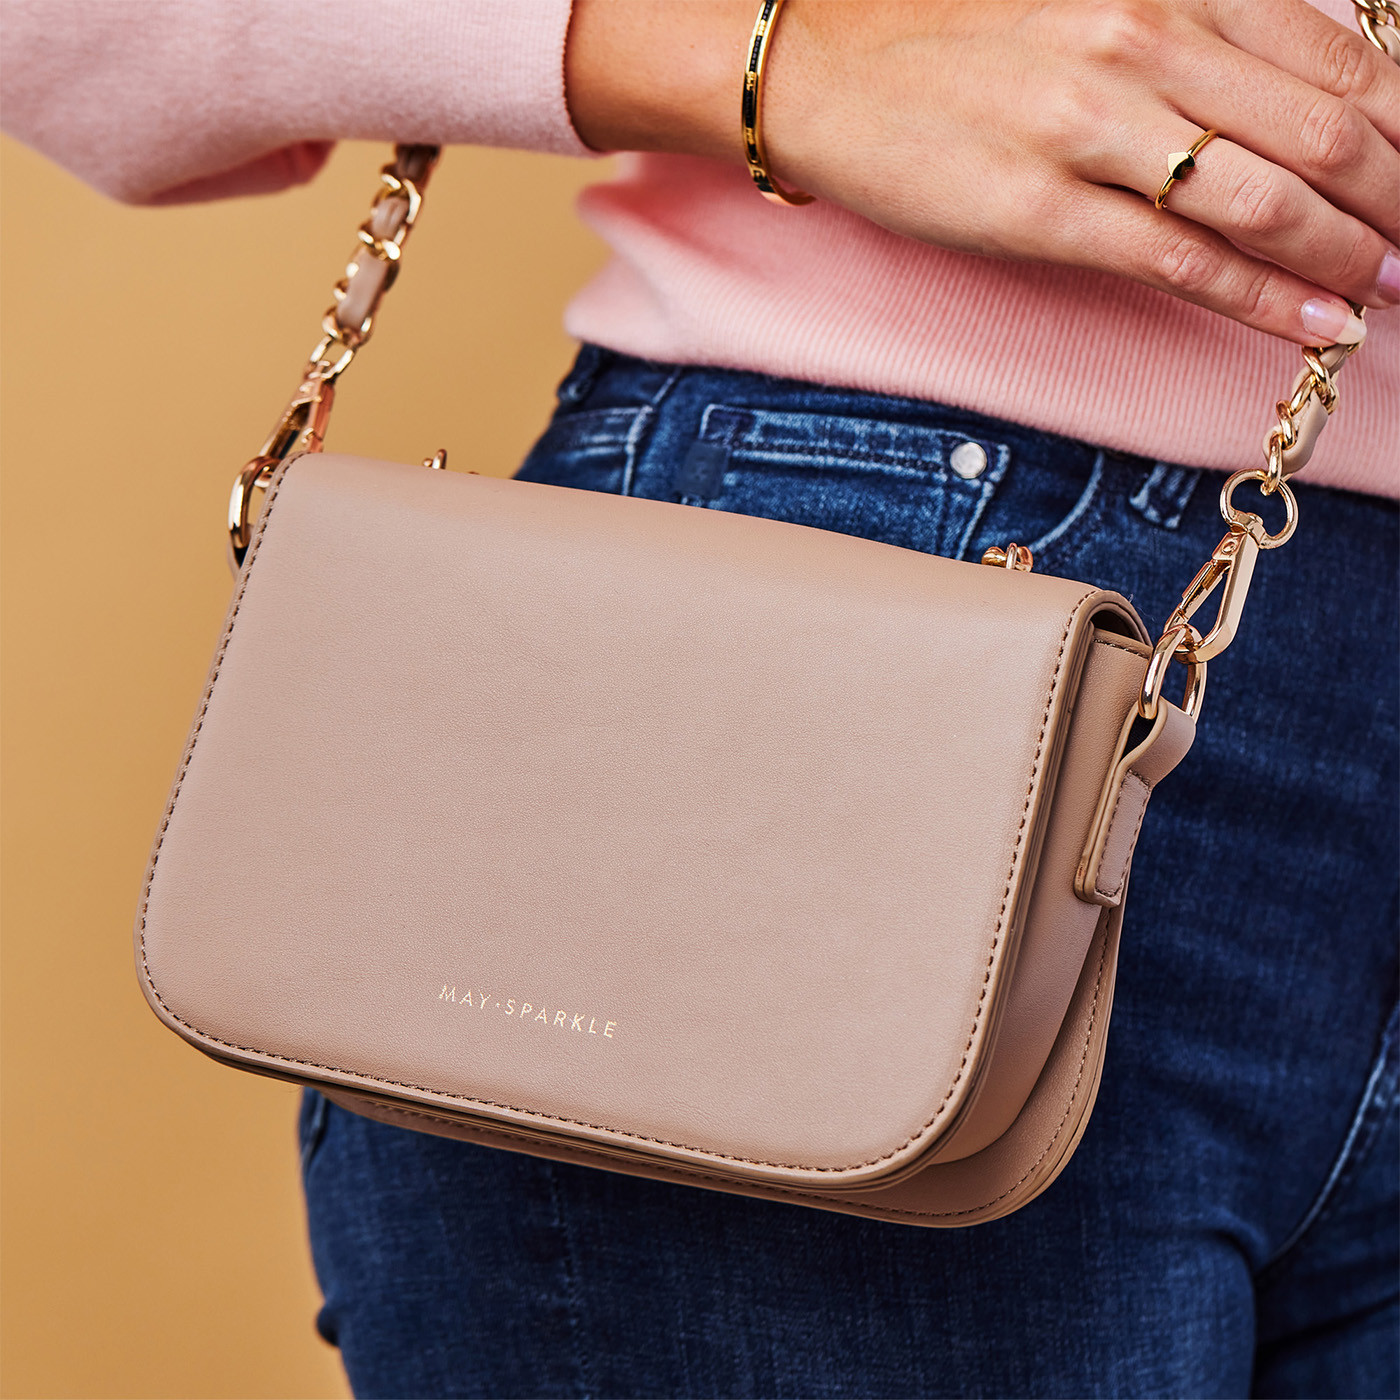 May Sparkle Festive Taupe Crossbody MS22001